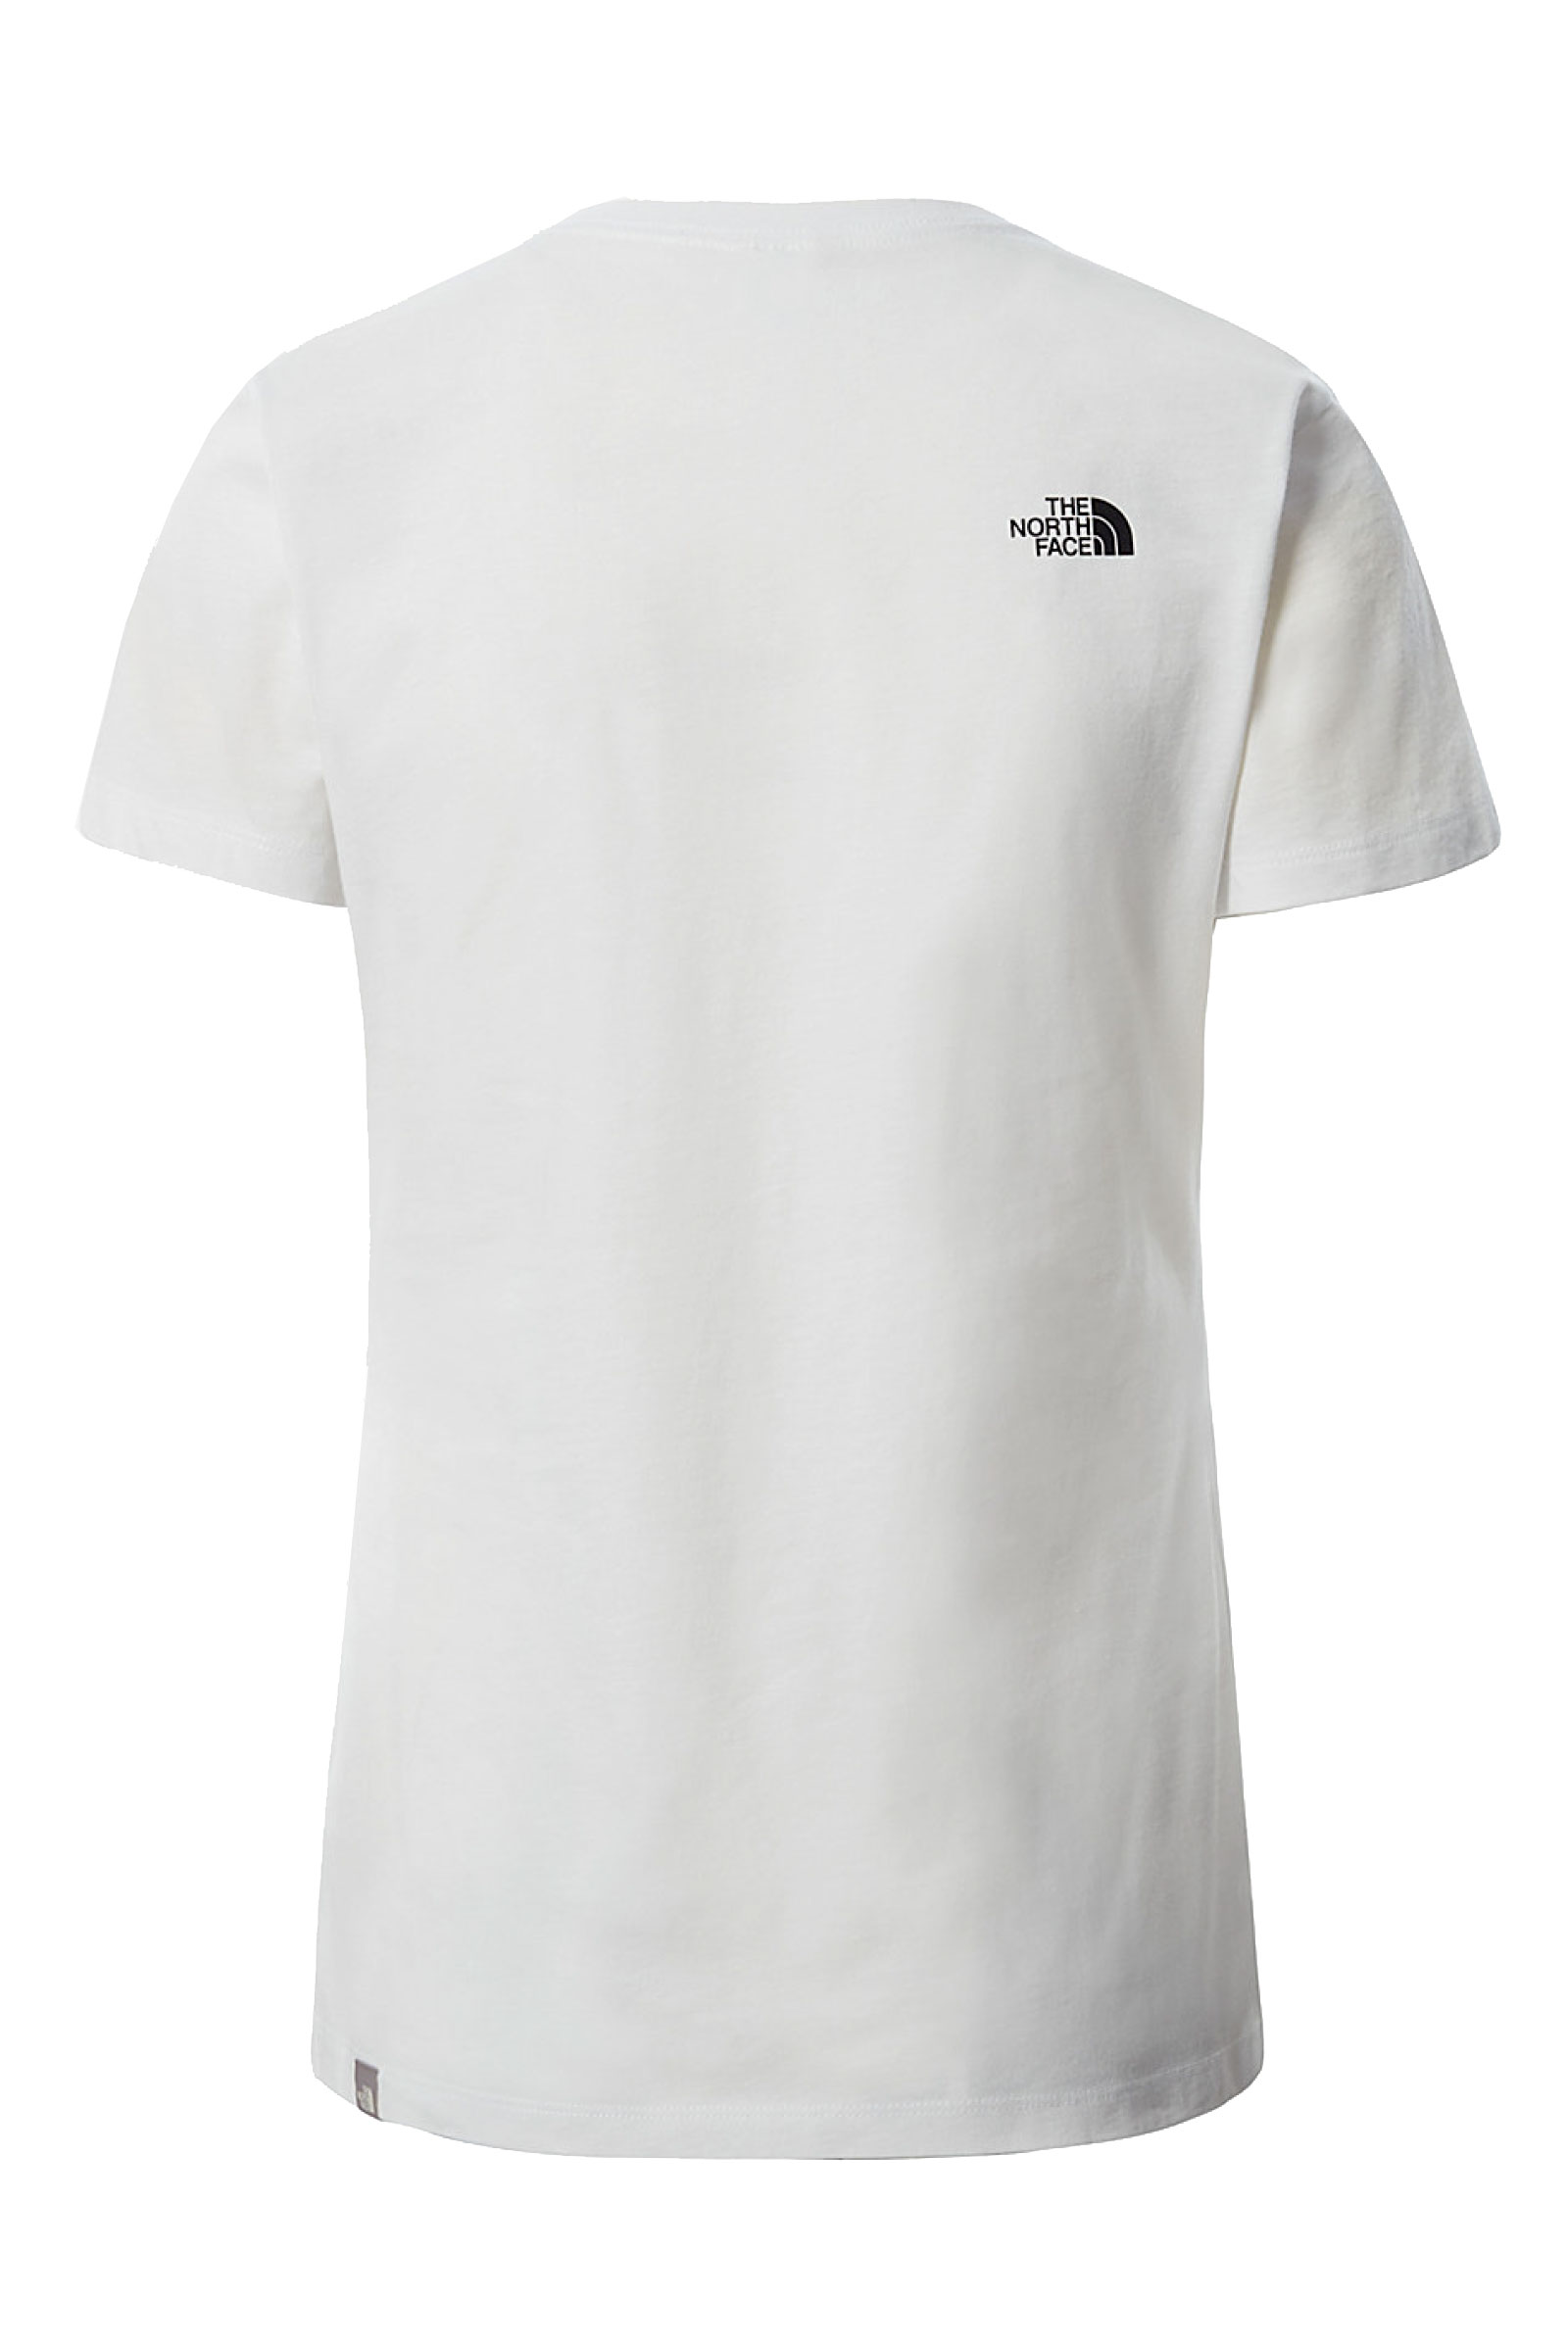 THE NORTH FACE | T-Shirt | NF0A4T1QFN41